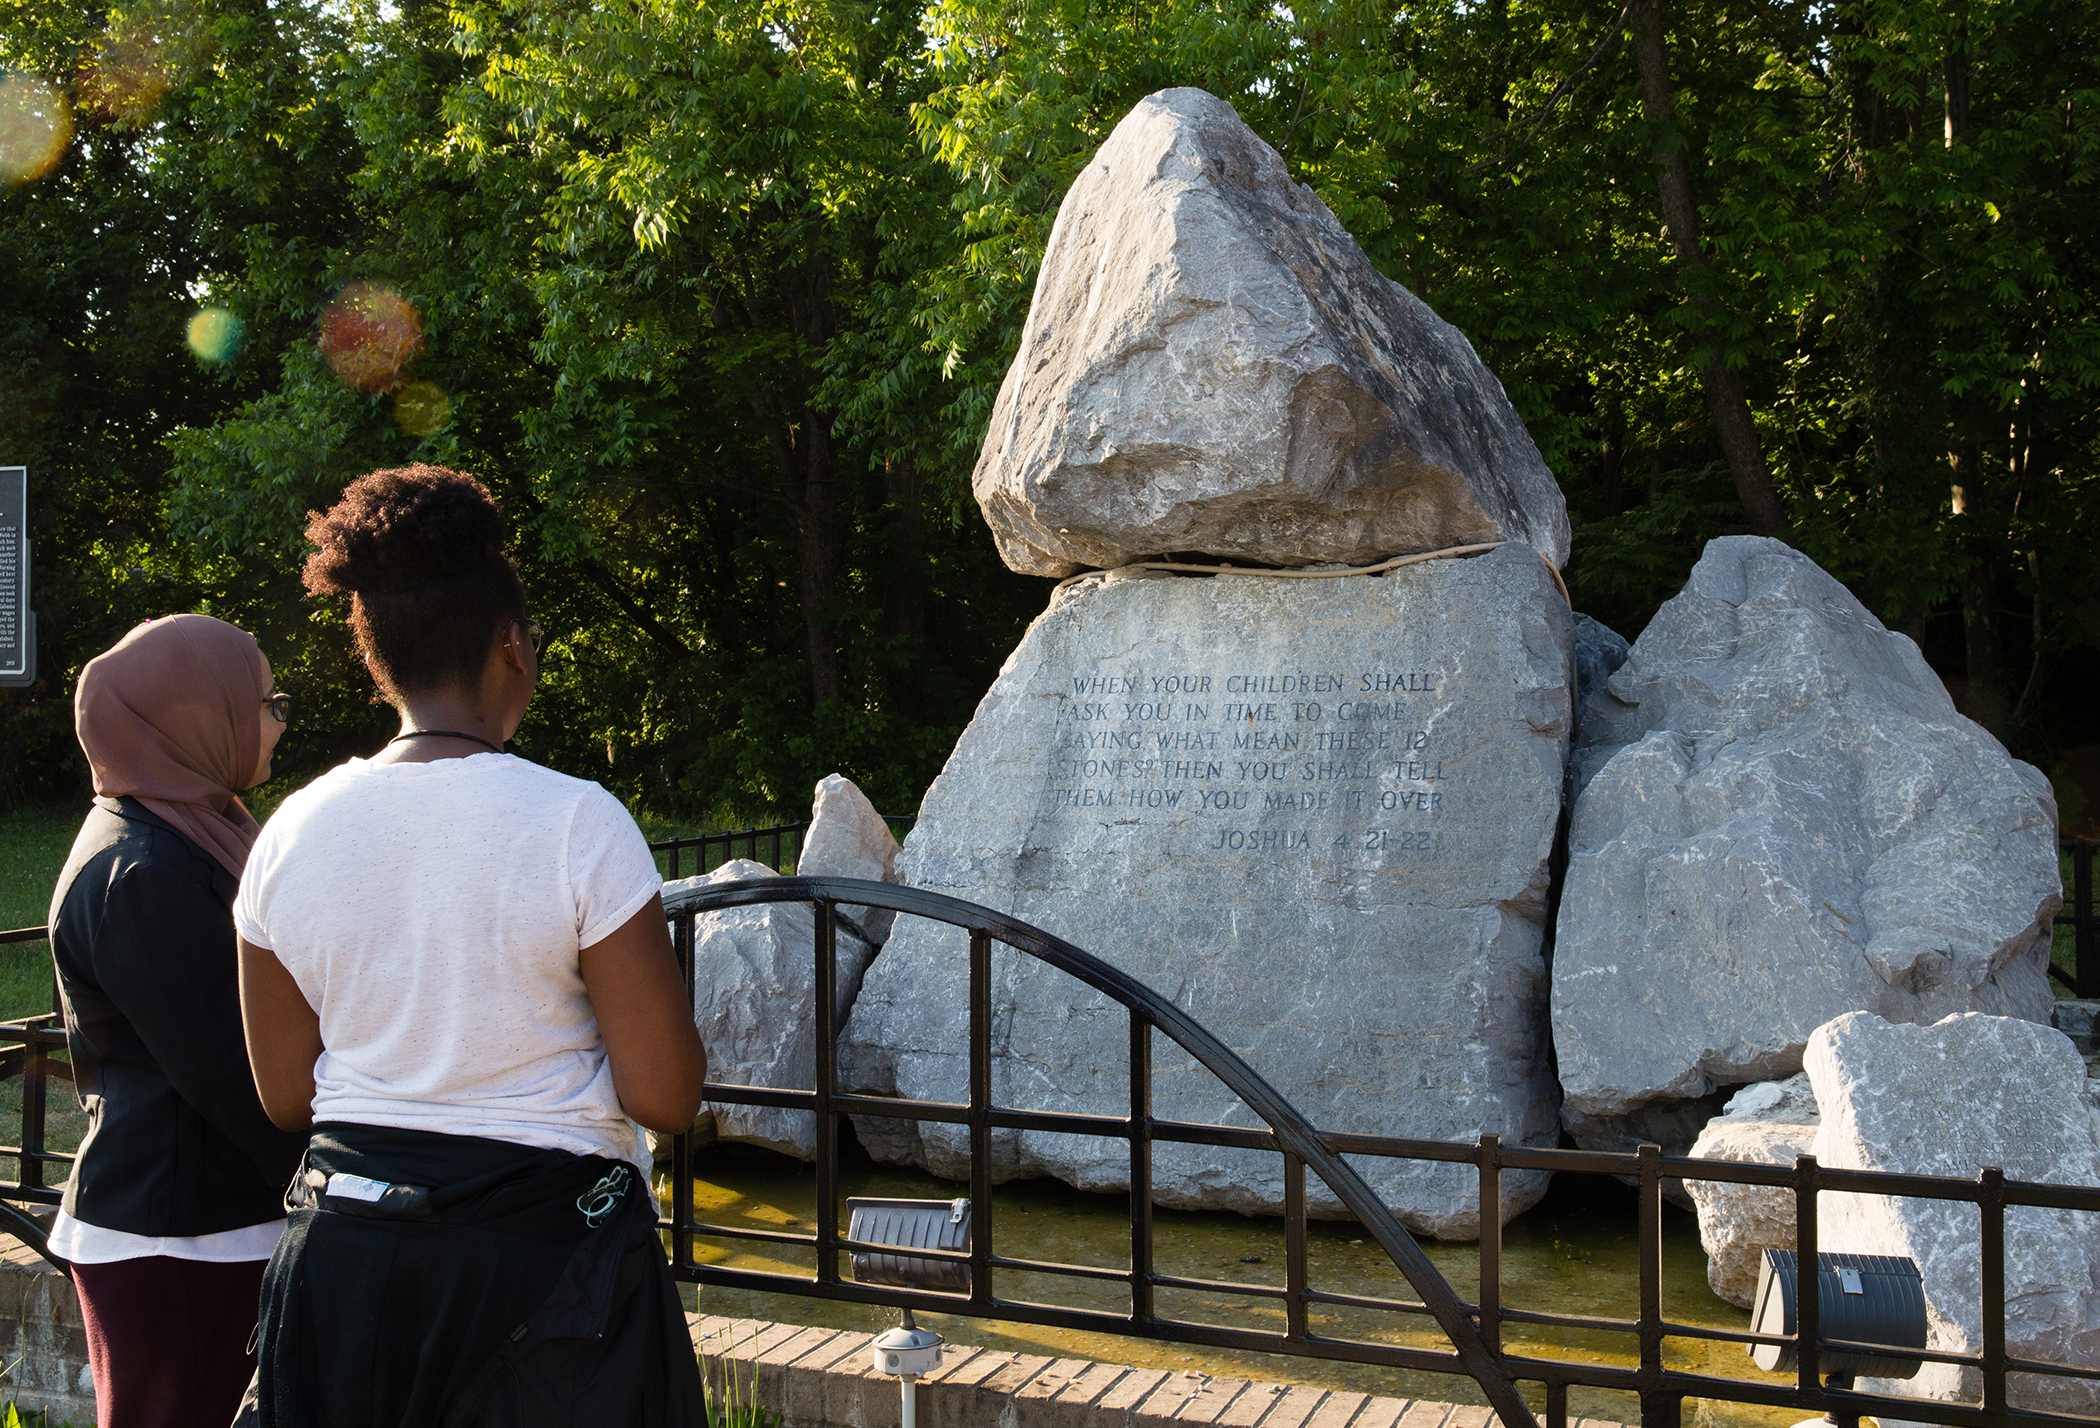 Tour participants view the rock sculpture located near the foot of the Edmund Pettus Bridge in Selma.